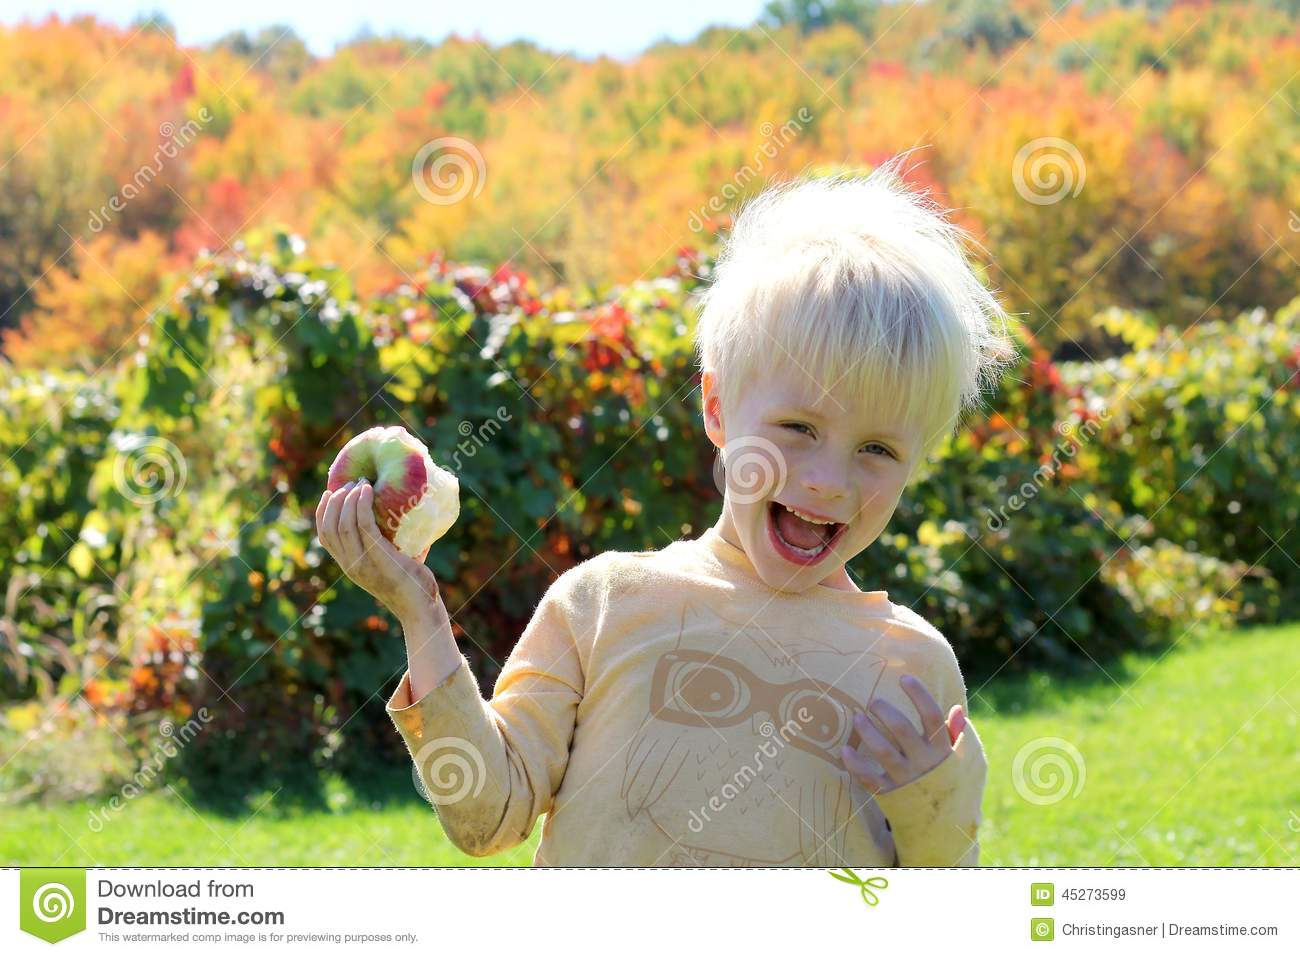 Happy Laughing Child Eating Apple at Orchard